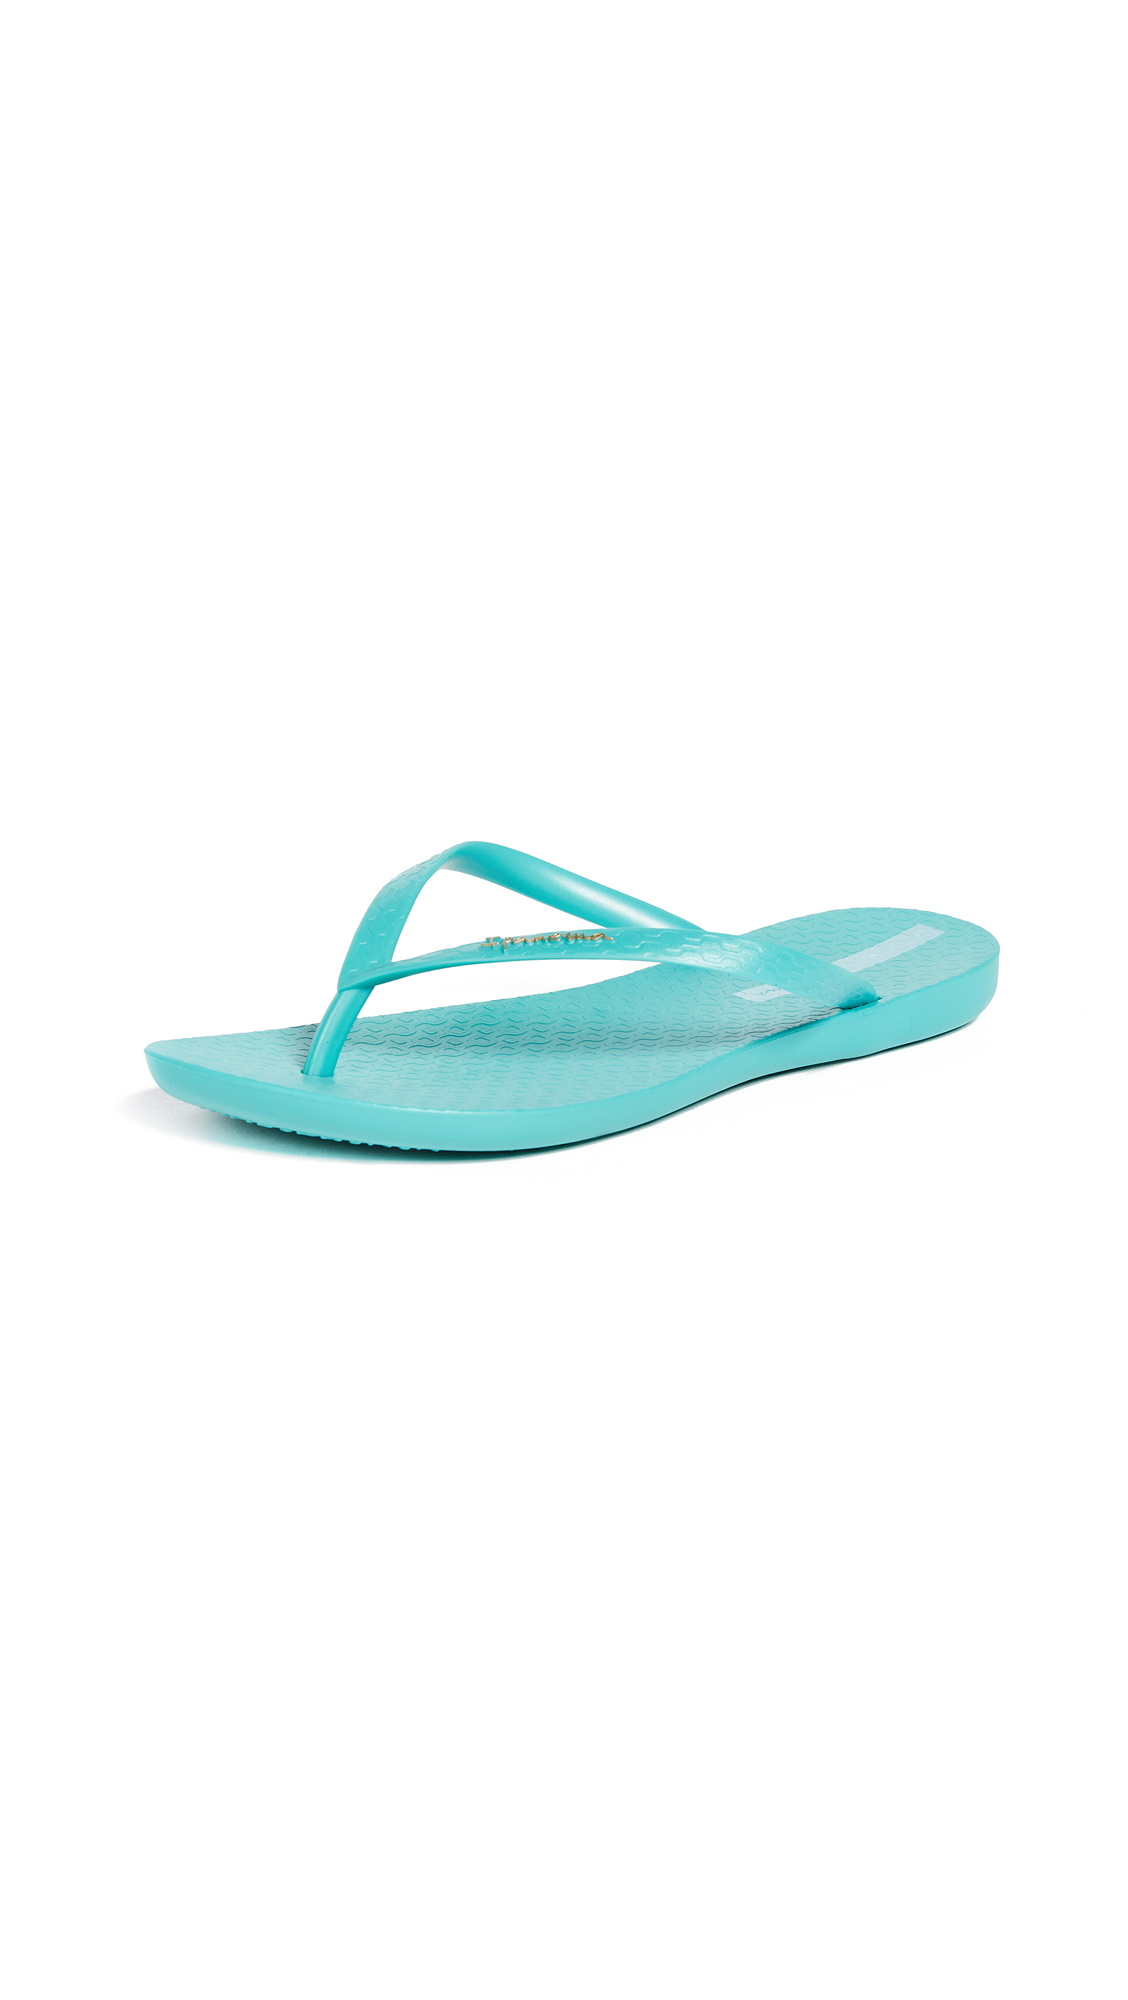 Ipanema Wave Essence Flip Flops - Blue/Blue